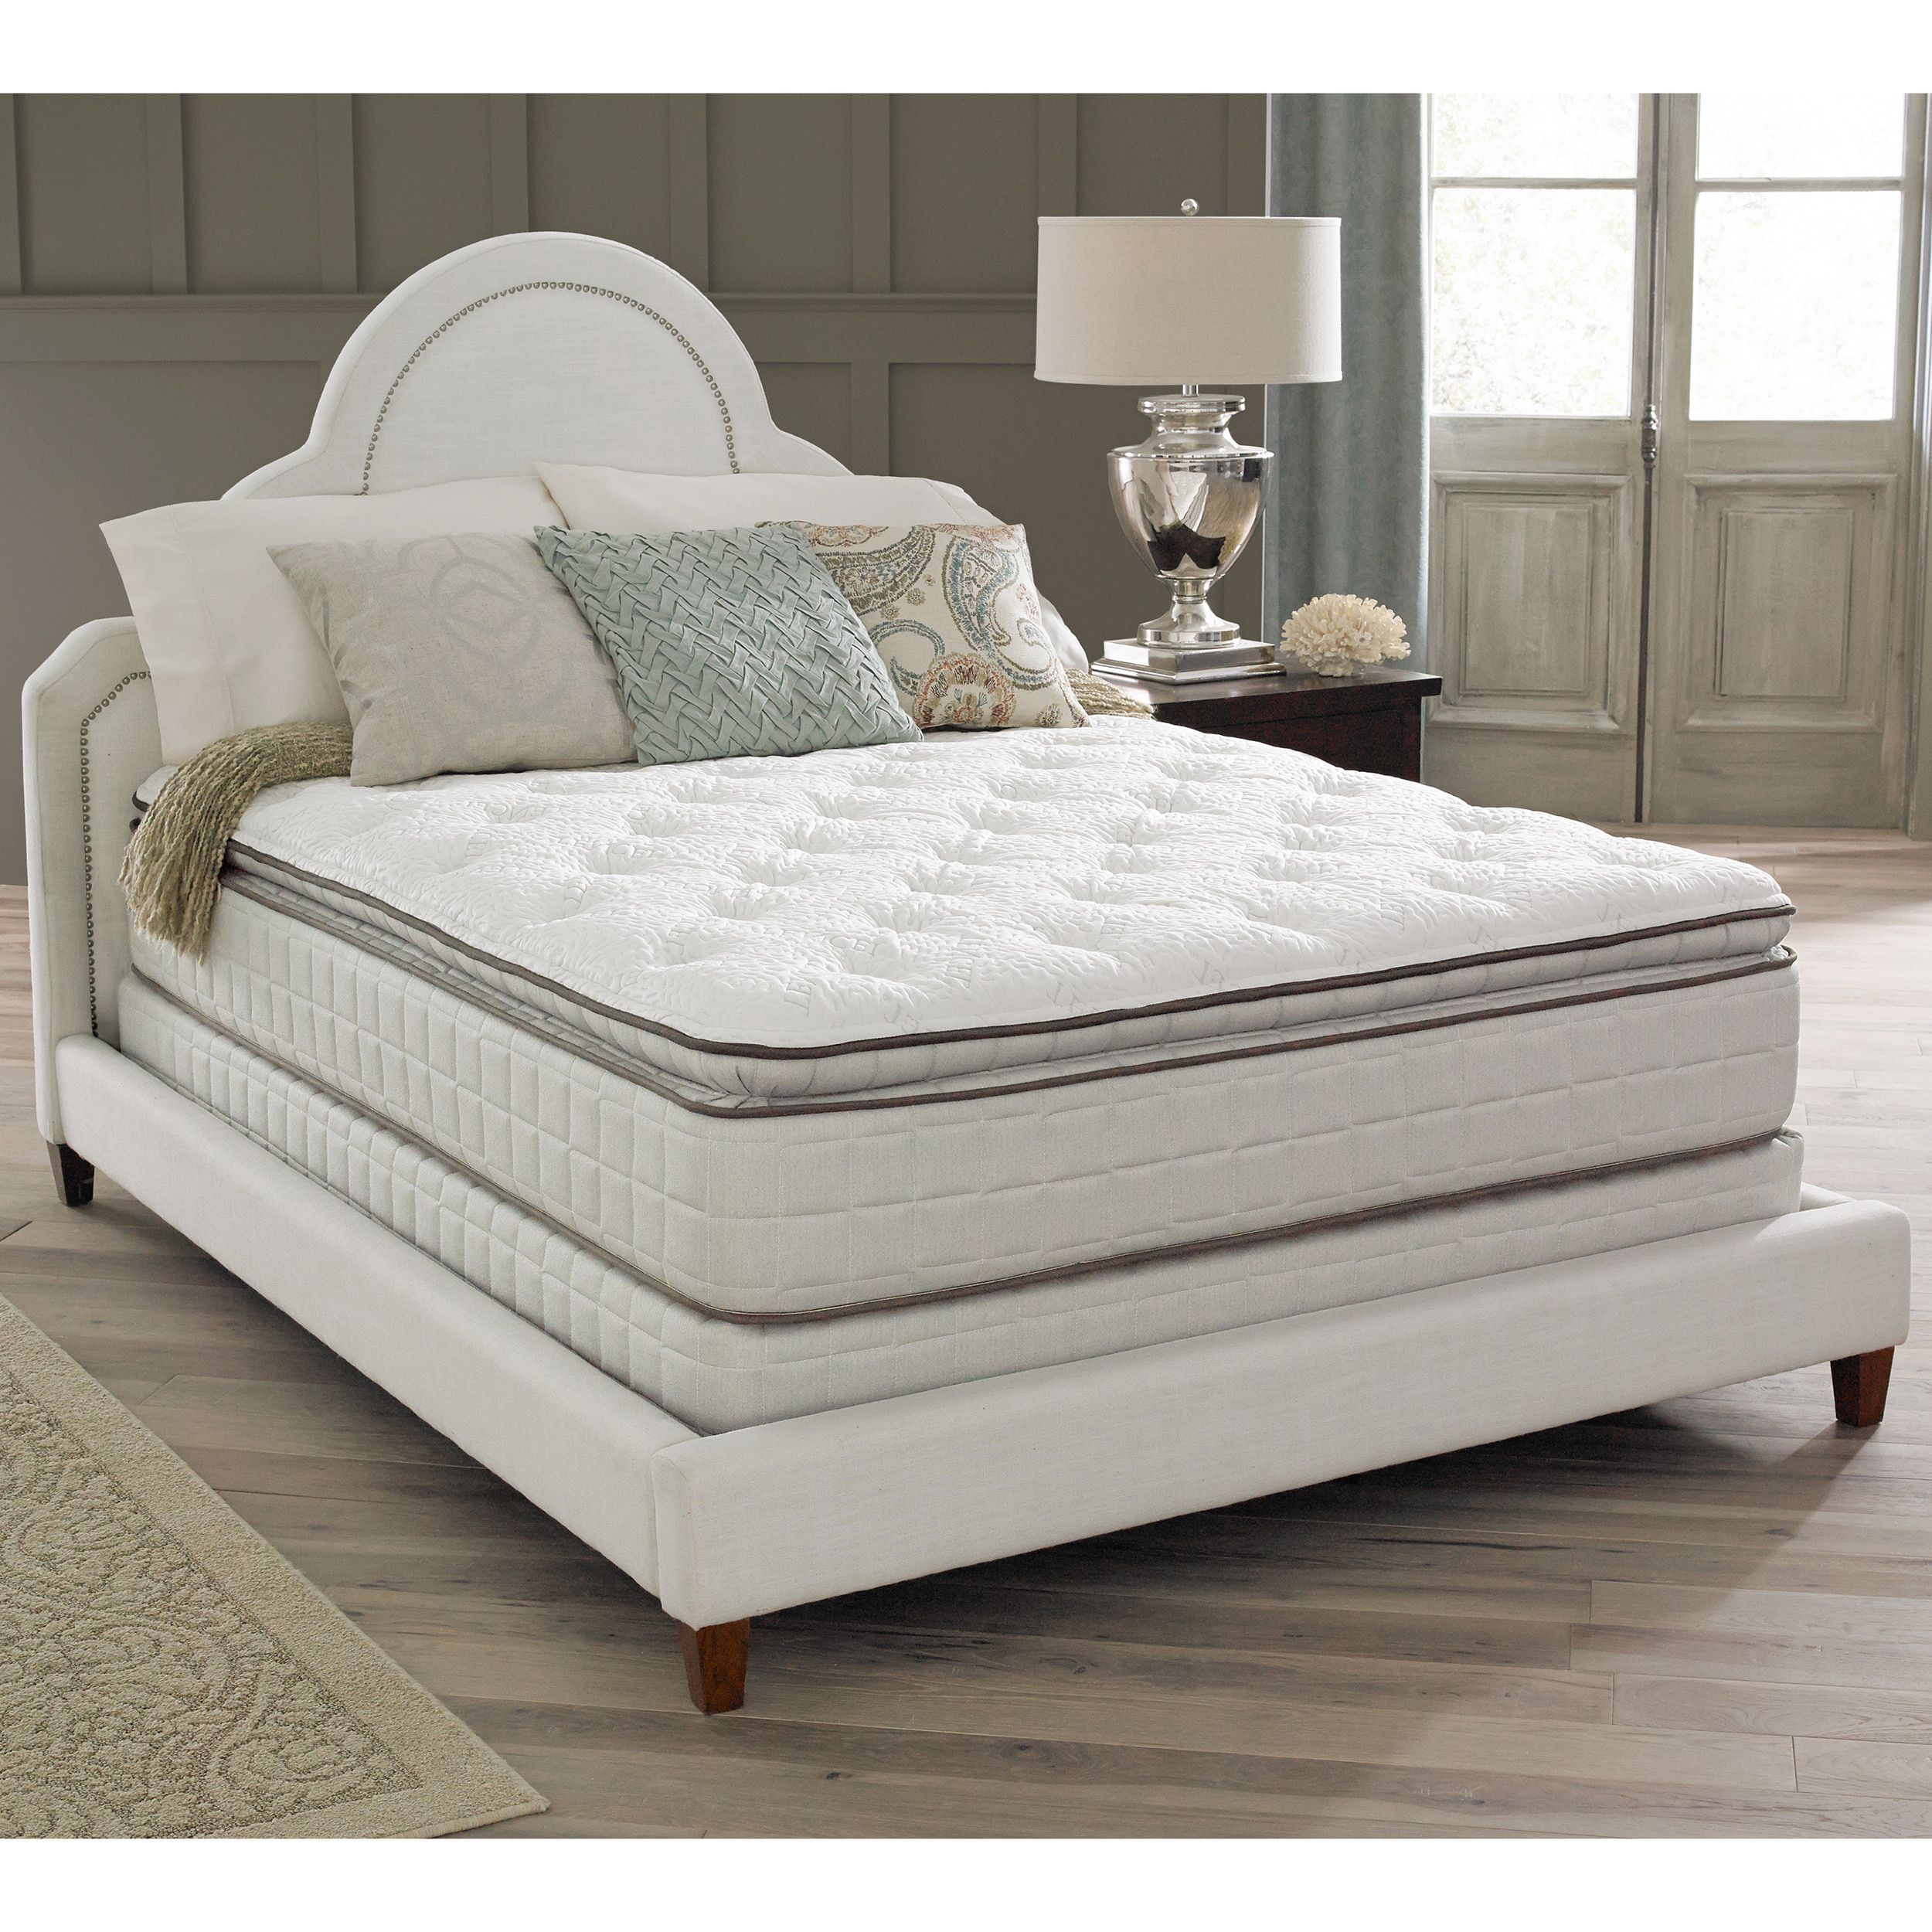 sets apartment jordan of mattress living jordans home bedroom furniture story s lovely info room my charming mattresses